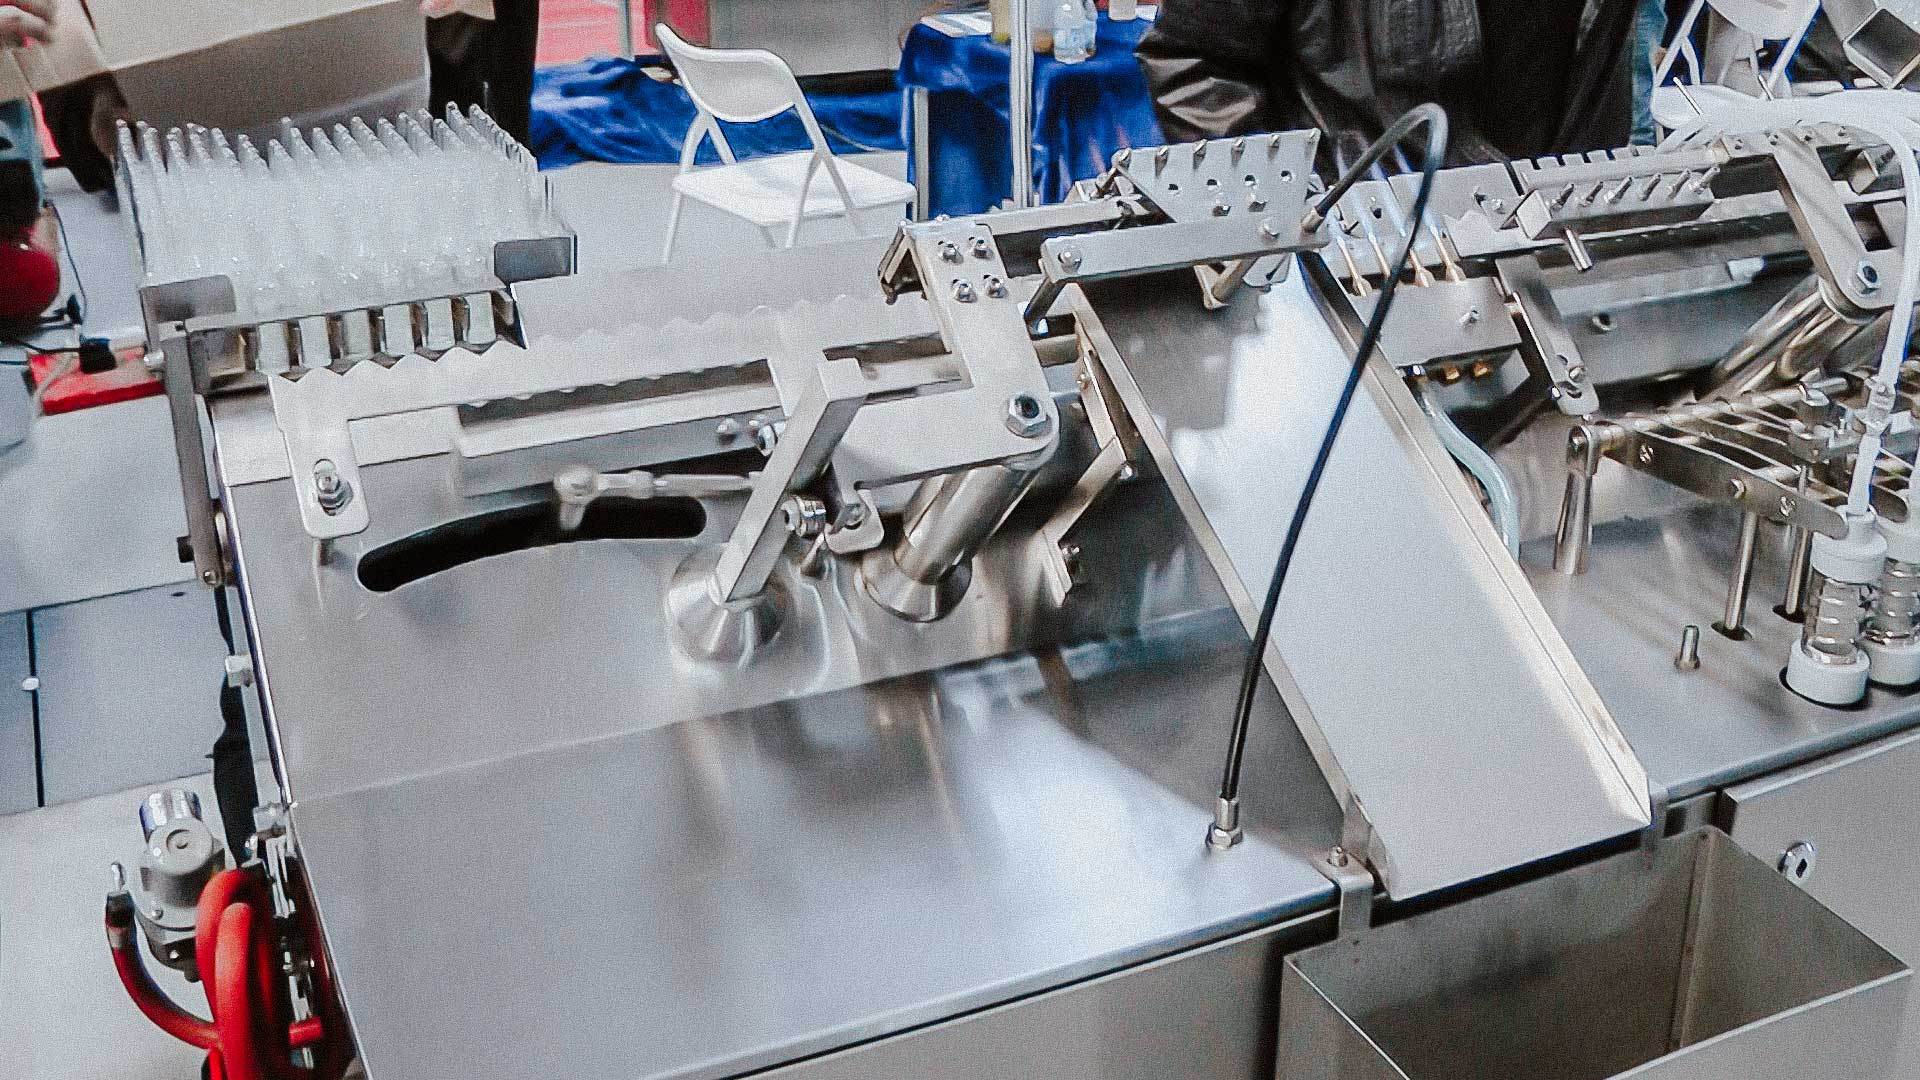 Automatic equipment for filling with liquid and sealing sterile glass ampoules with medicine